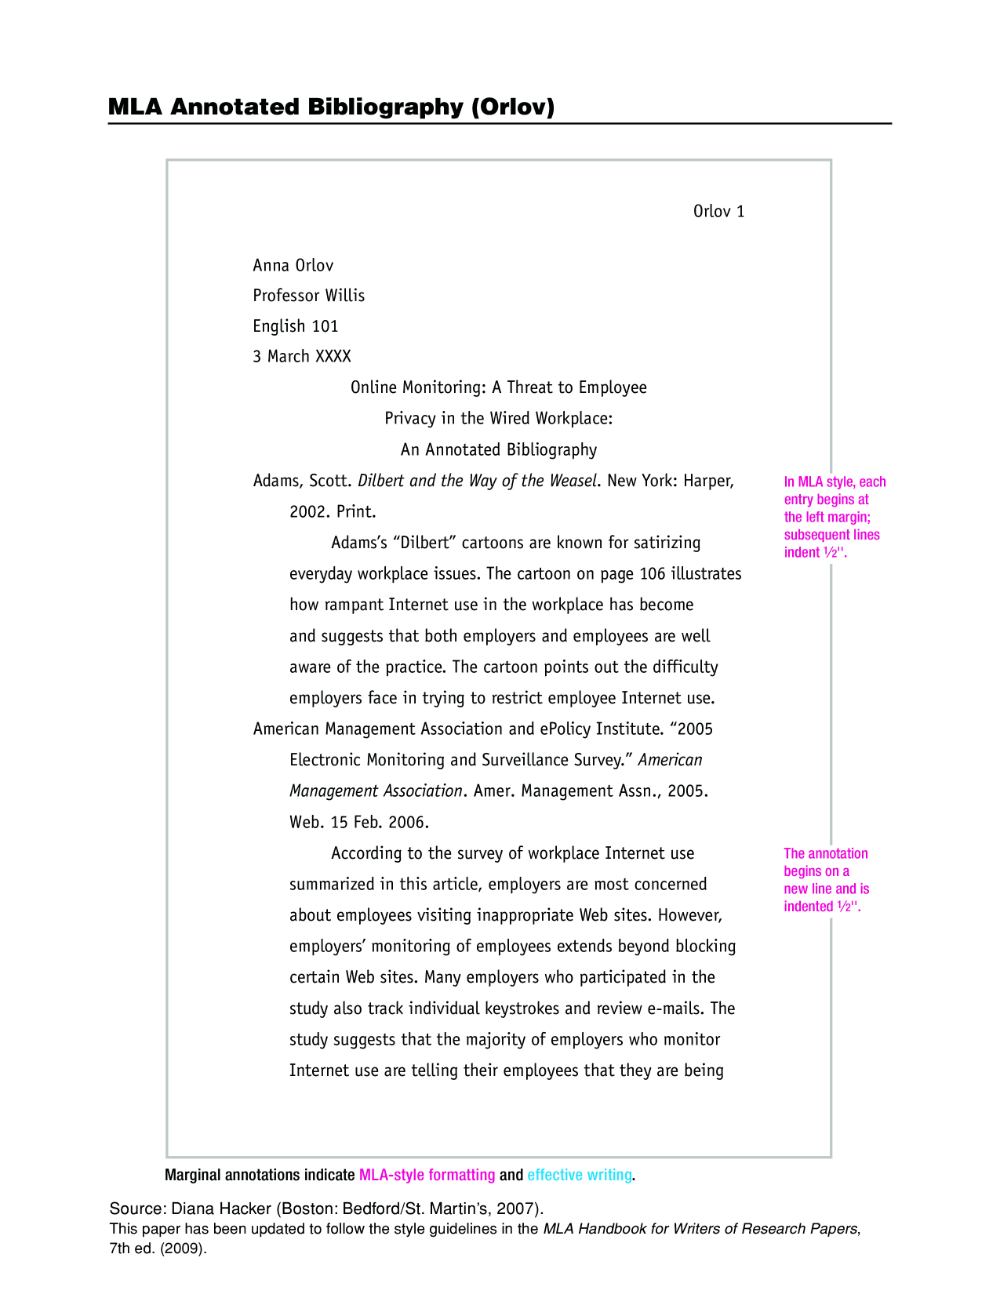 Annotated Bibliography Template Mla Handbook For Writer Of Research Paper 7th Edition Pdf Free Download